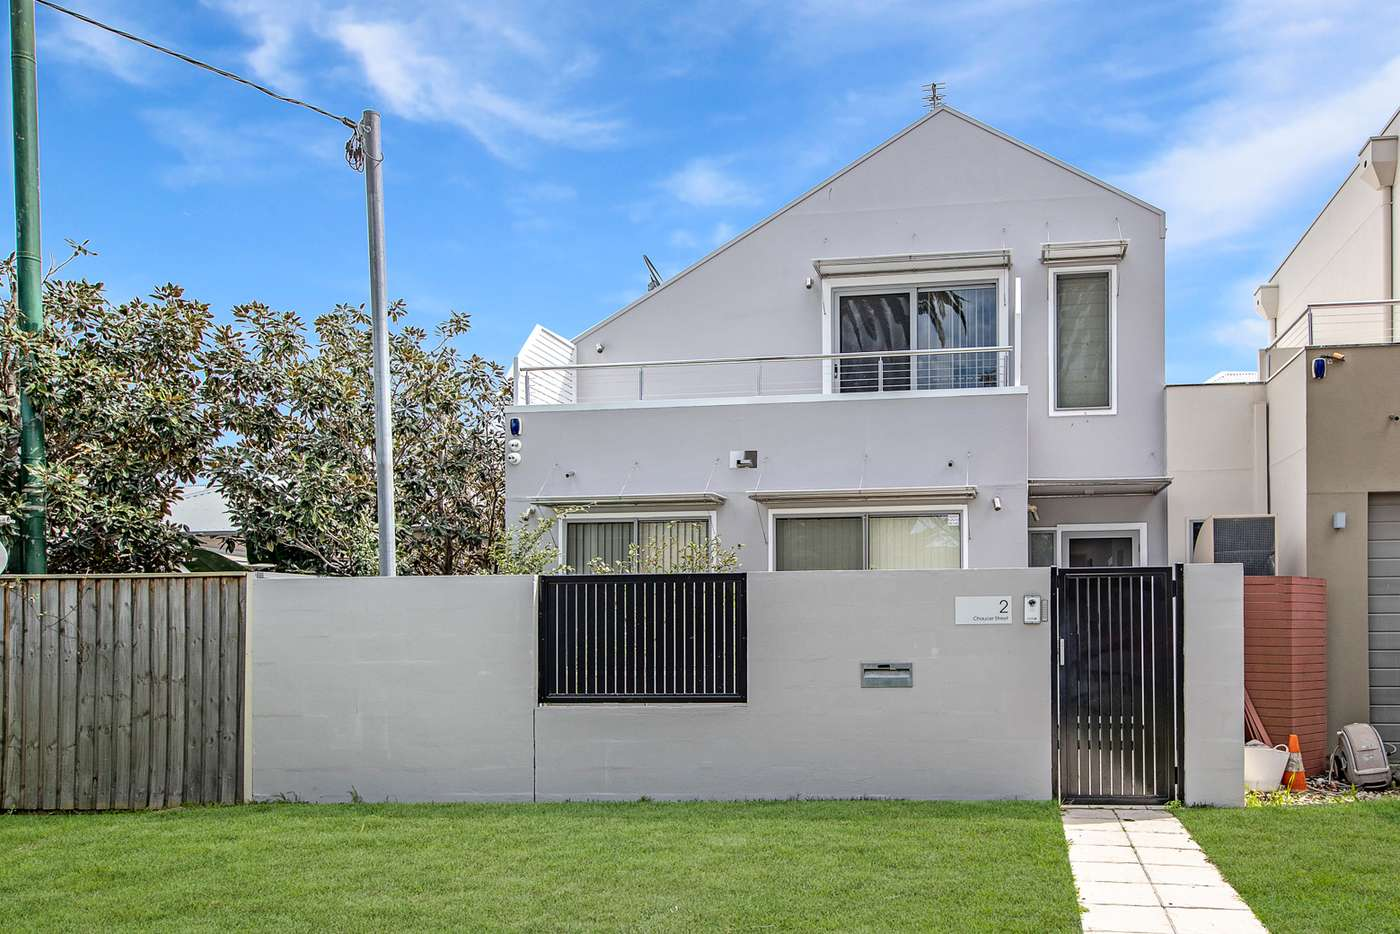 Main view of Homely house listing, 2 Chaucer Street, Hamilton NSW 2303